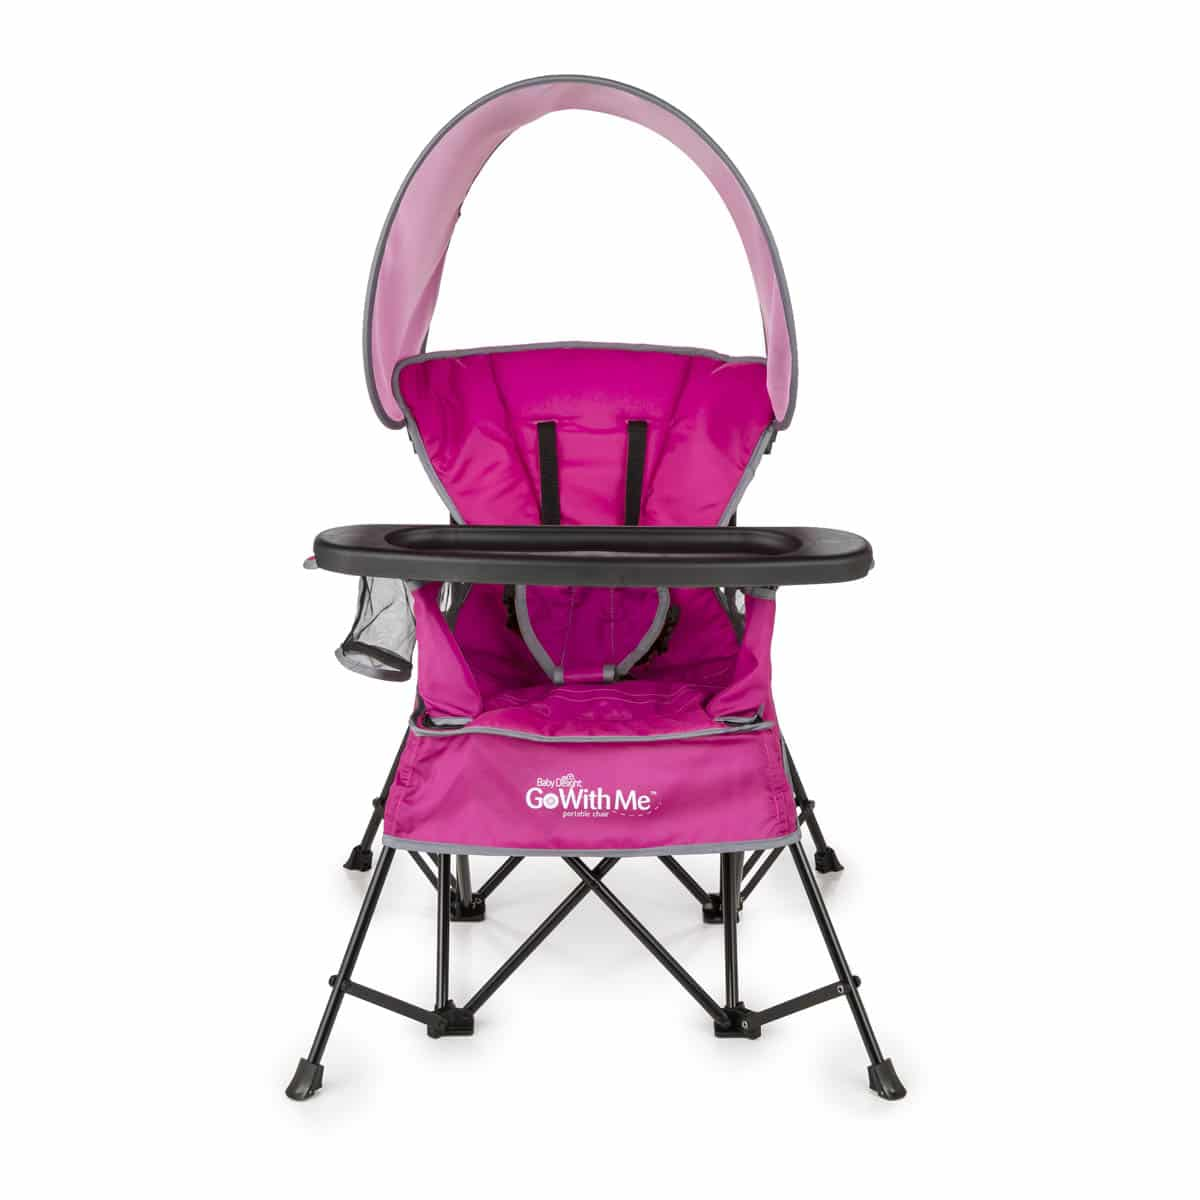 Go With Me Chair ...  sc 1 st  Baby Delight & Go With Me Chair - Pink - Baby Delight Inc